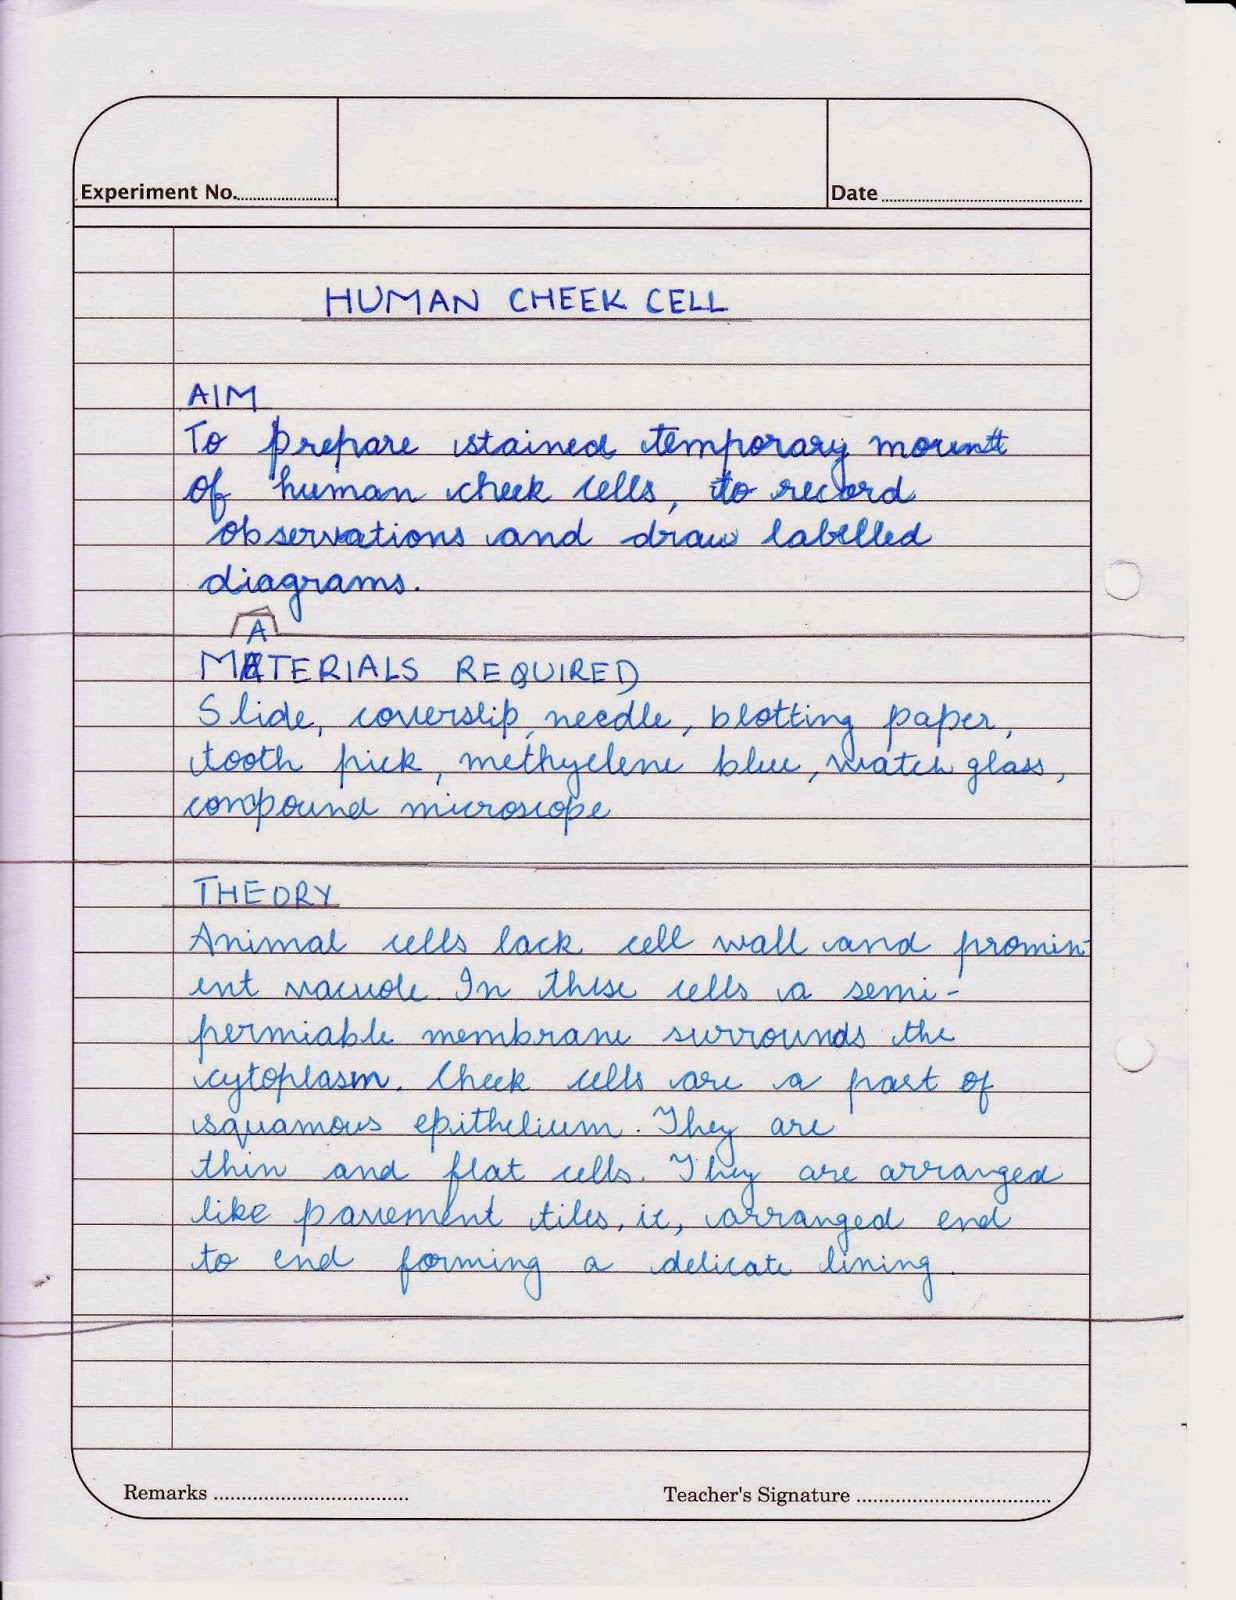 difference between onion cell and cheek cell